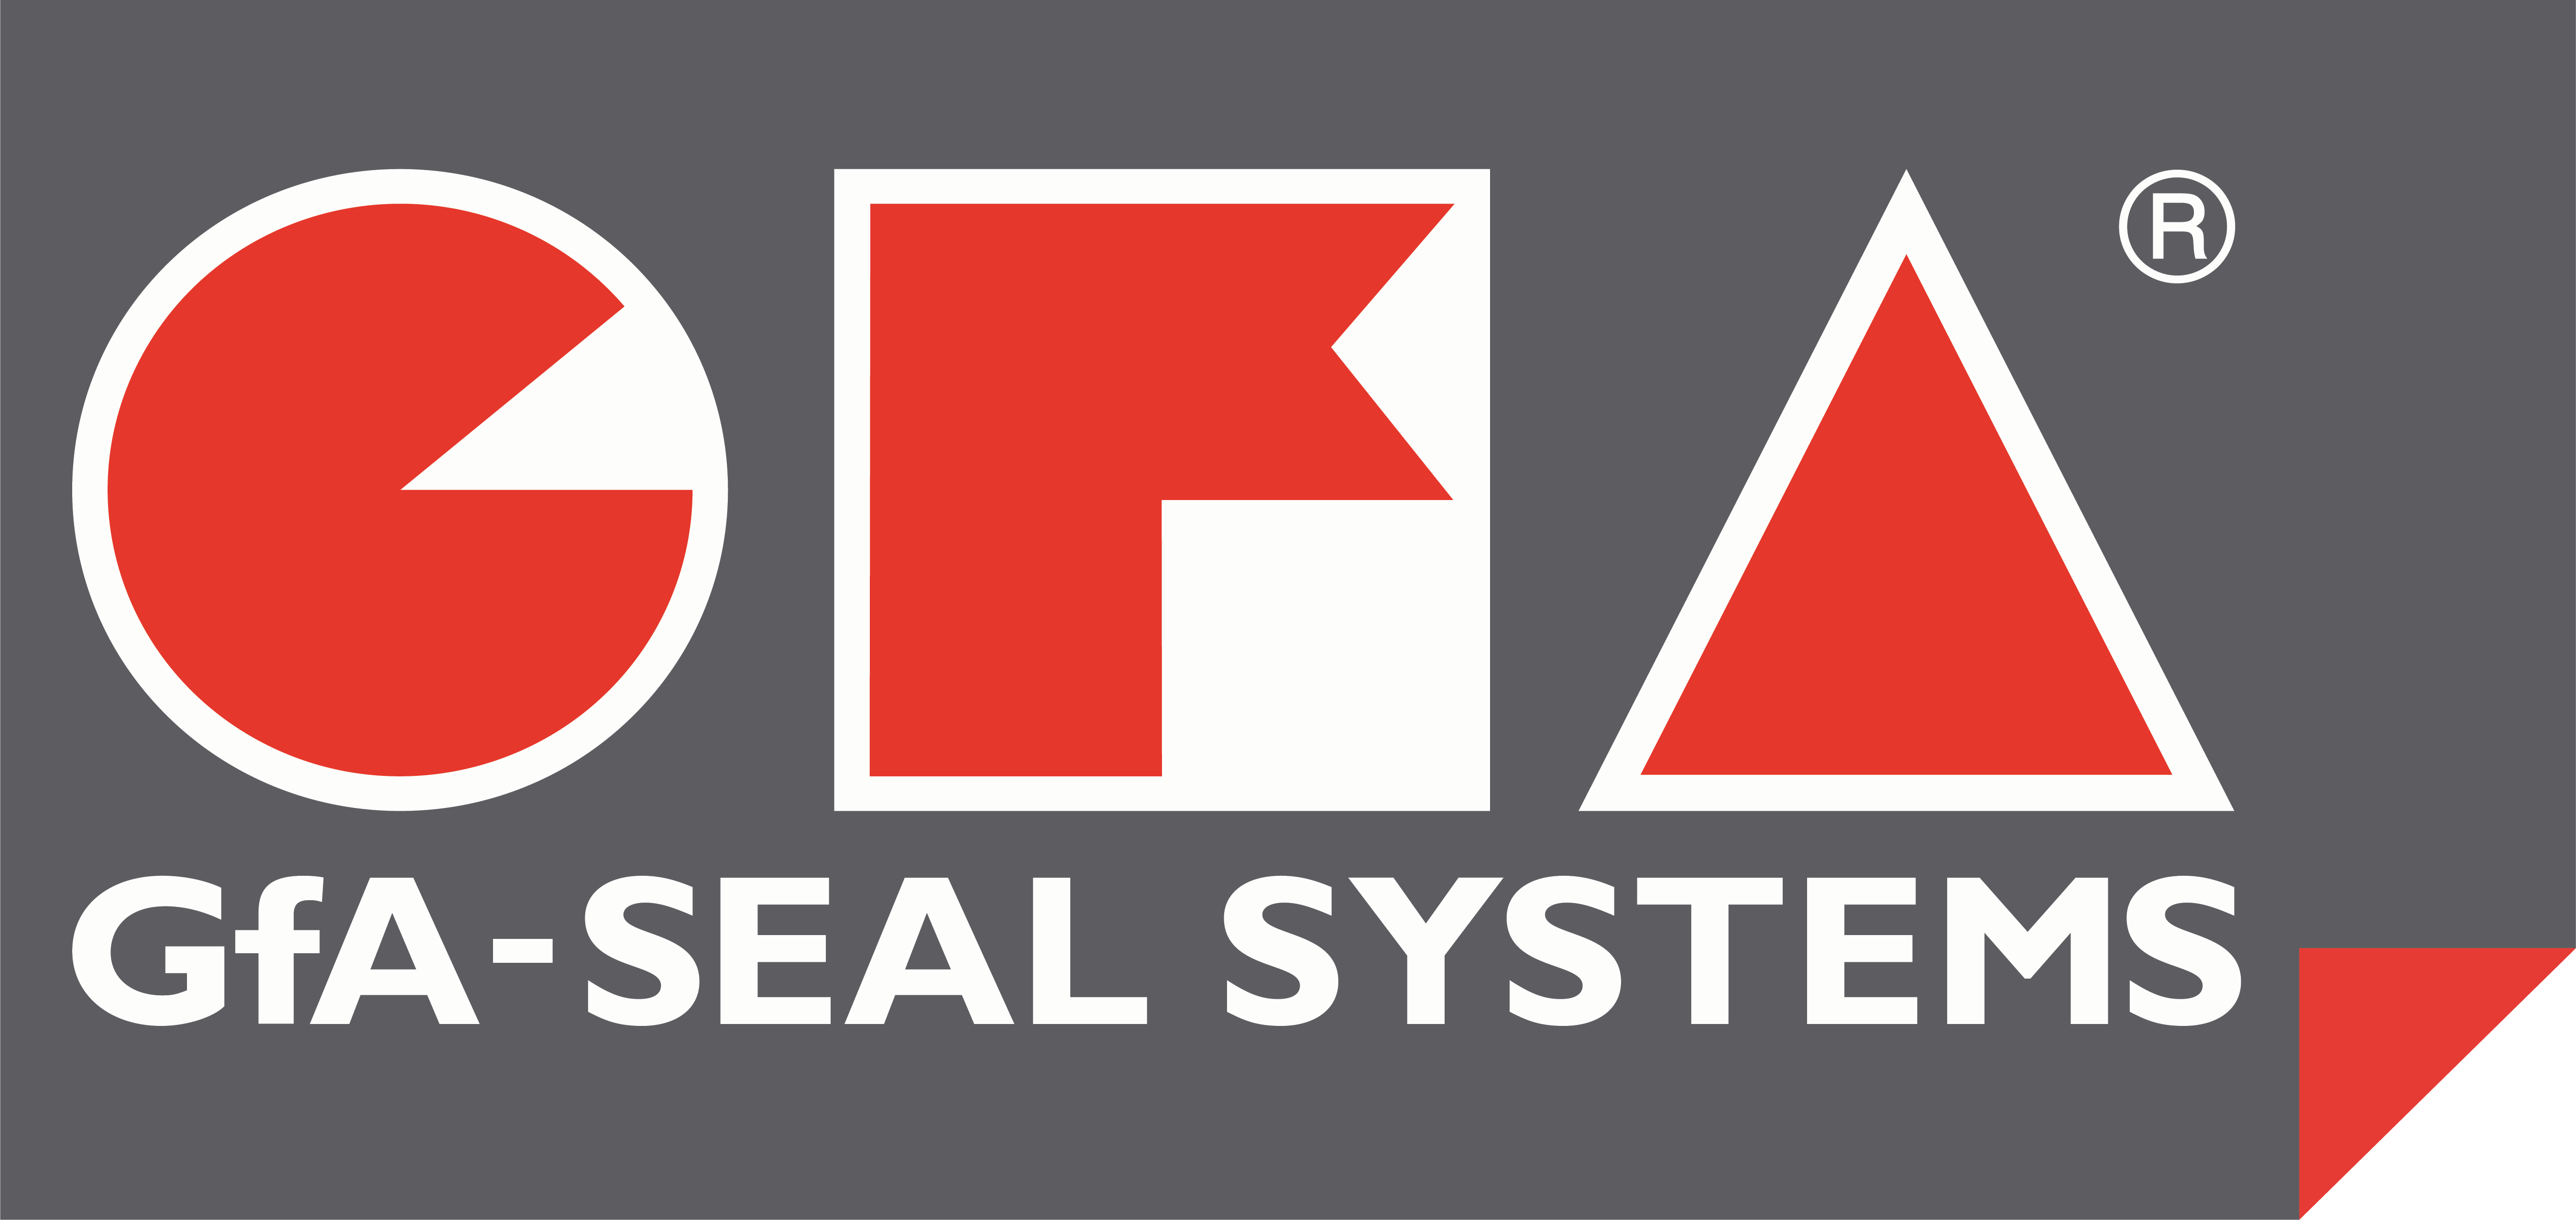 GfA Seal Systems